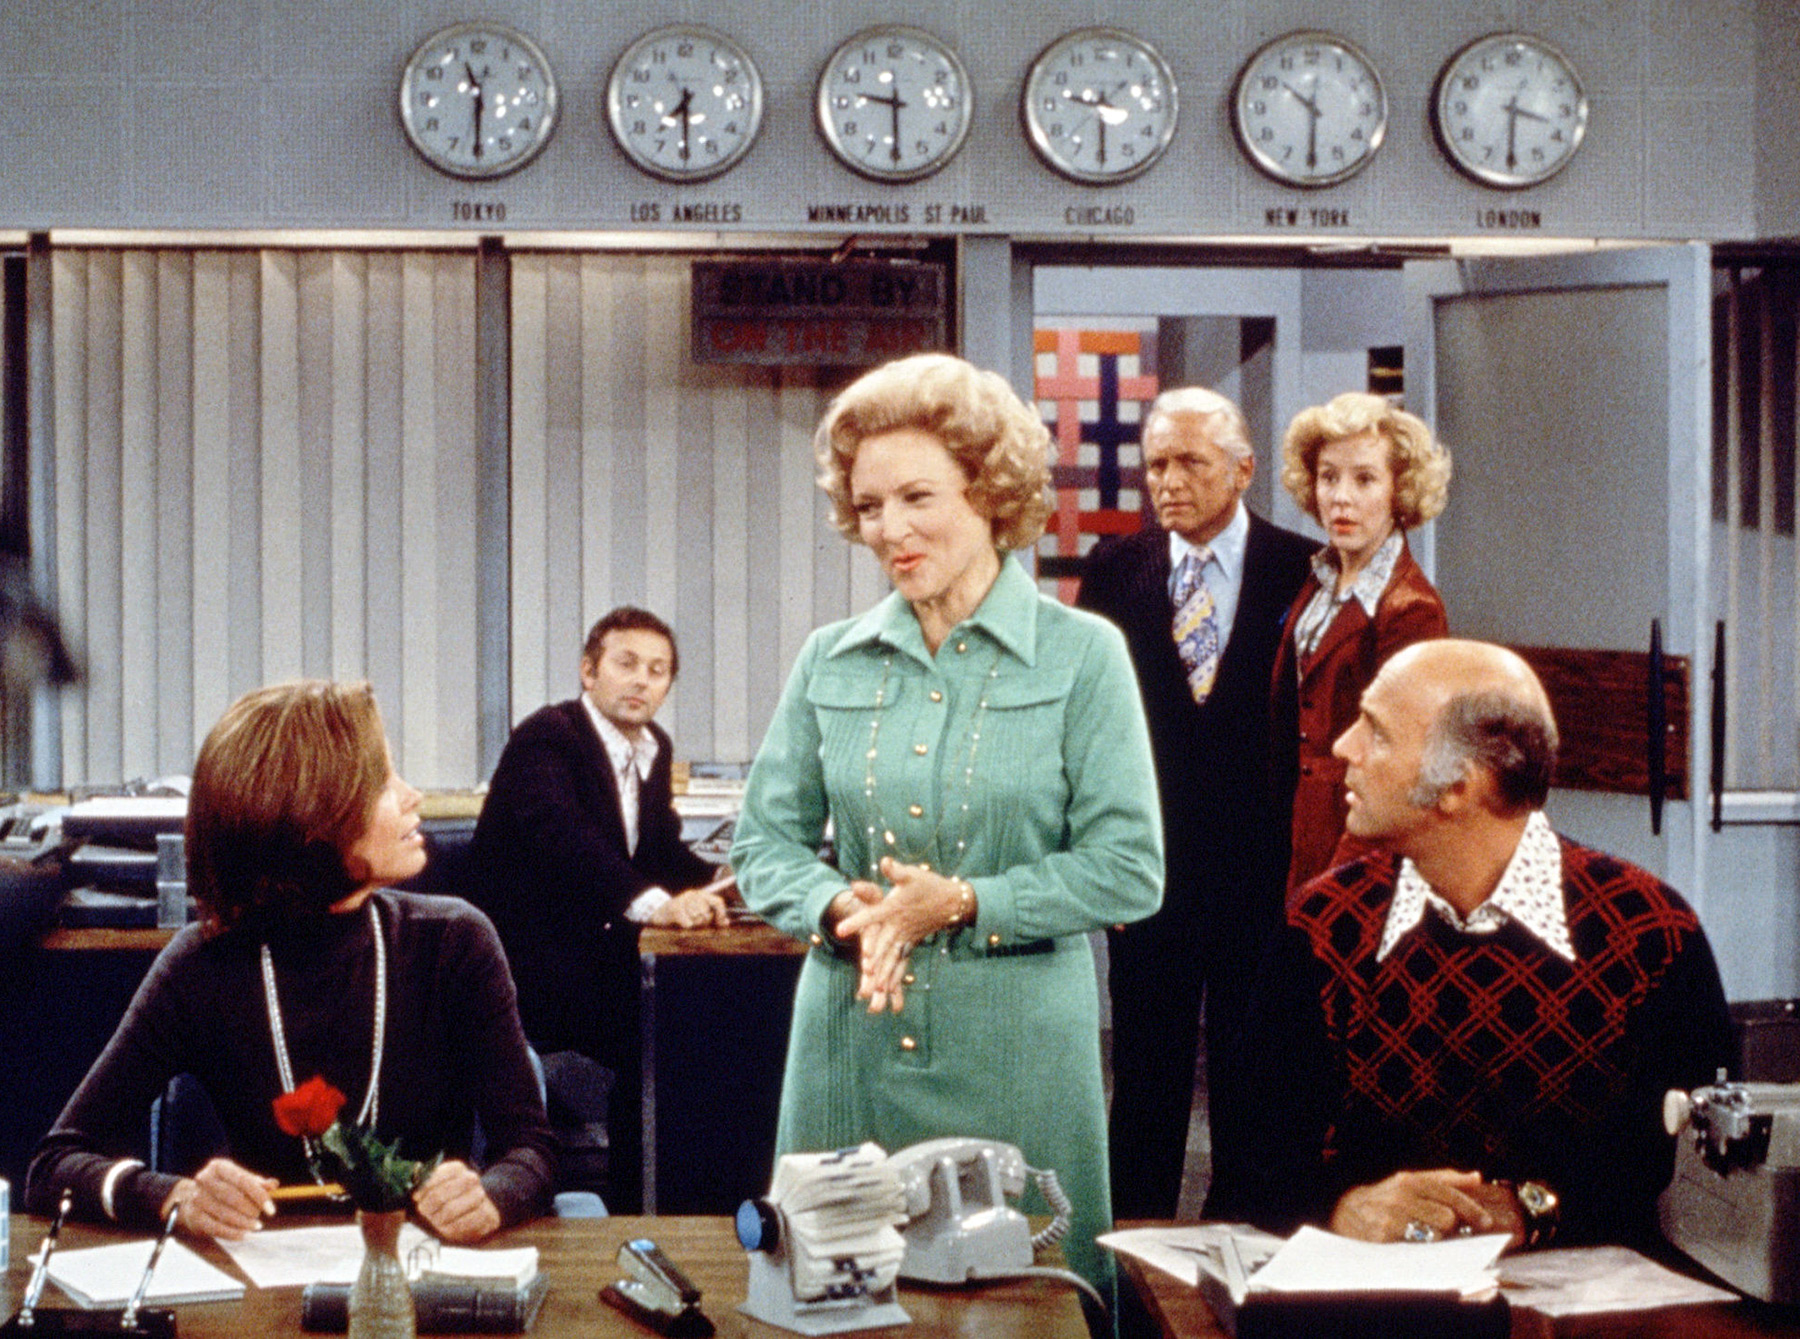 In the mid-'70s, White starred on The Mary Tyler Moore Show as Mary's judgmental, boy-crazy, frequent nemesis Sue Ann Nivens. The role won her two back-to-back Emmys.